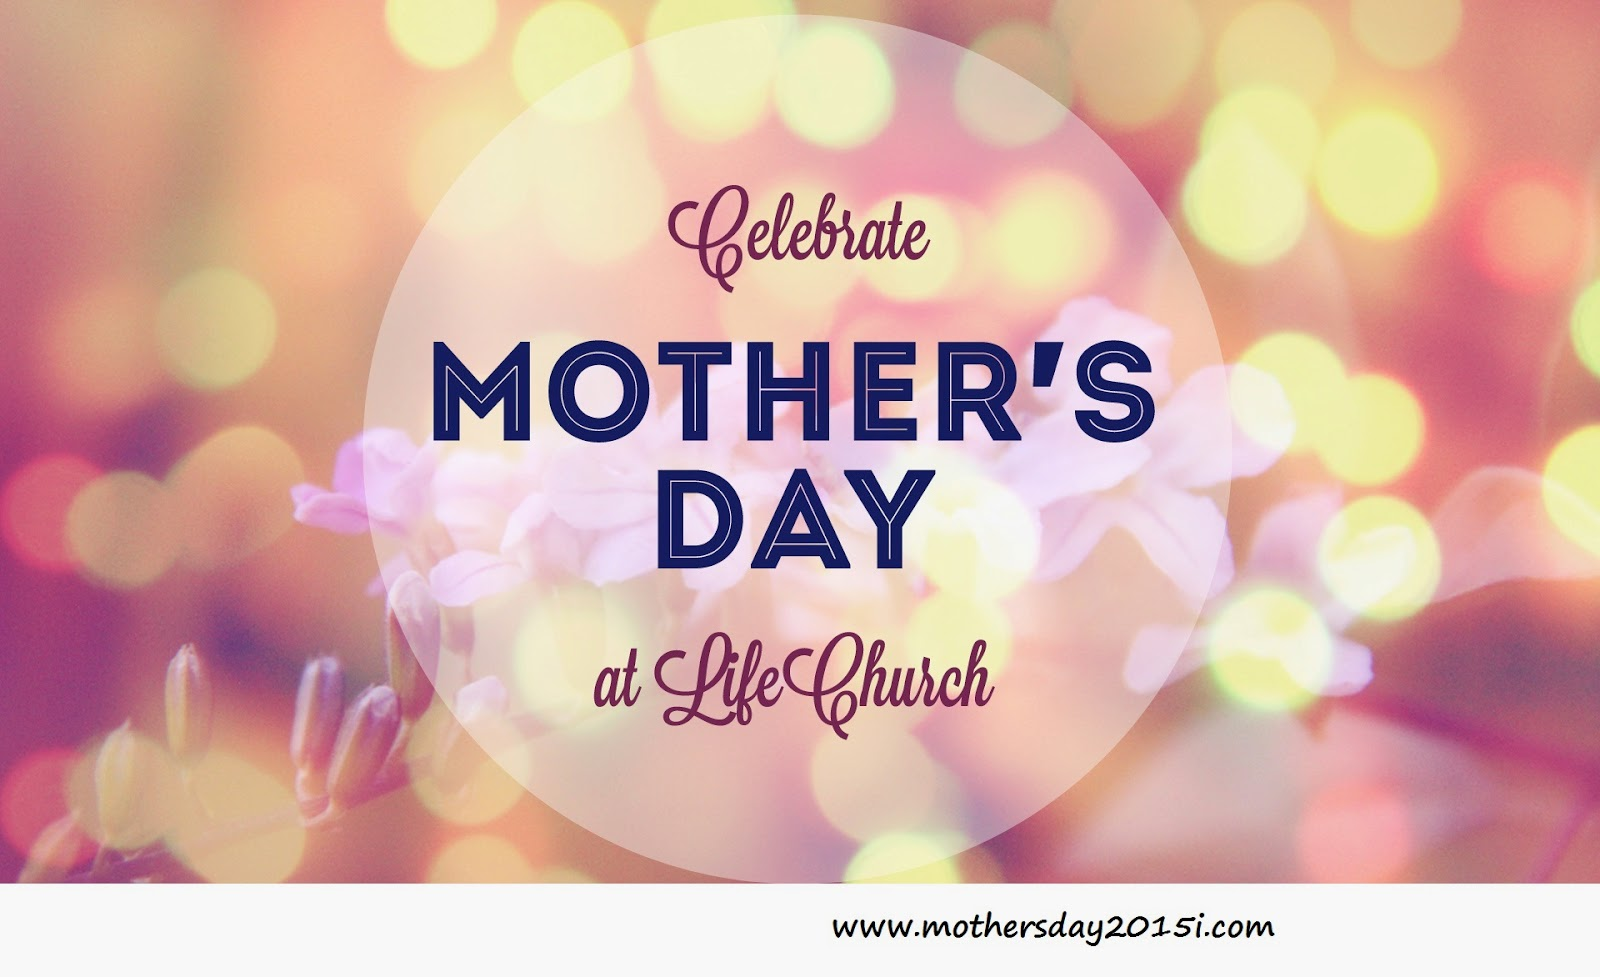 Mothers Day | Happy MOTHERS DAY 2015